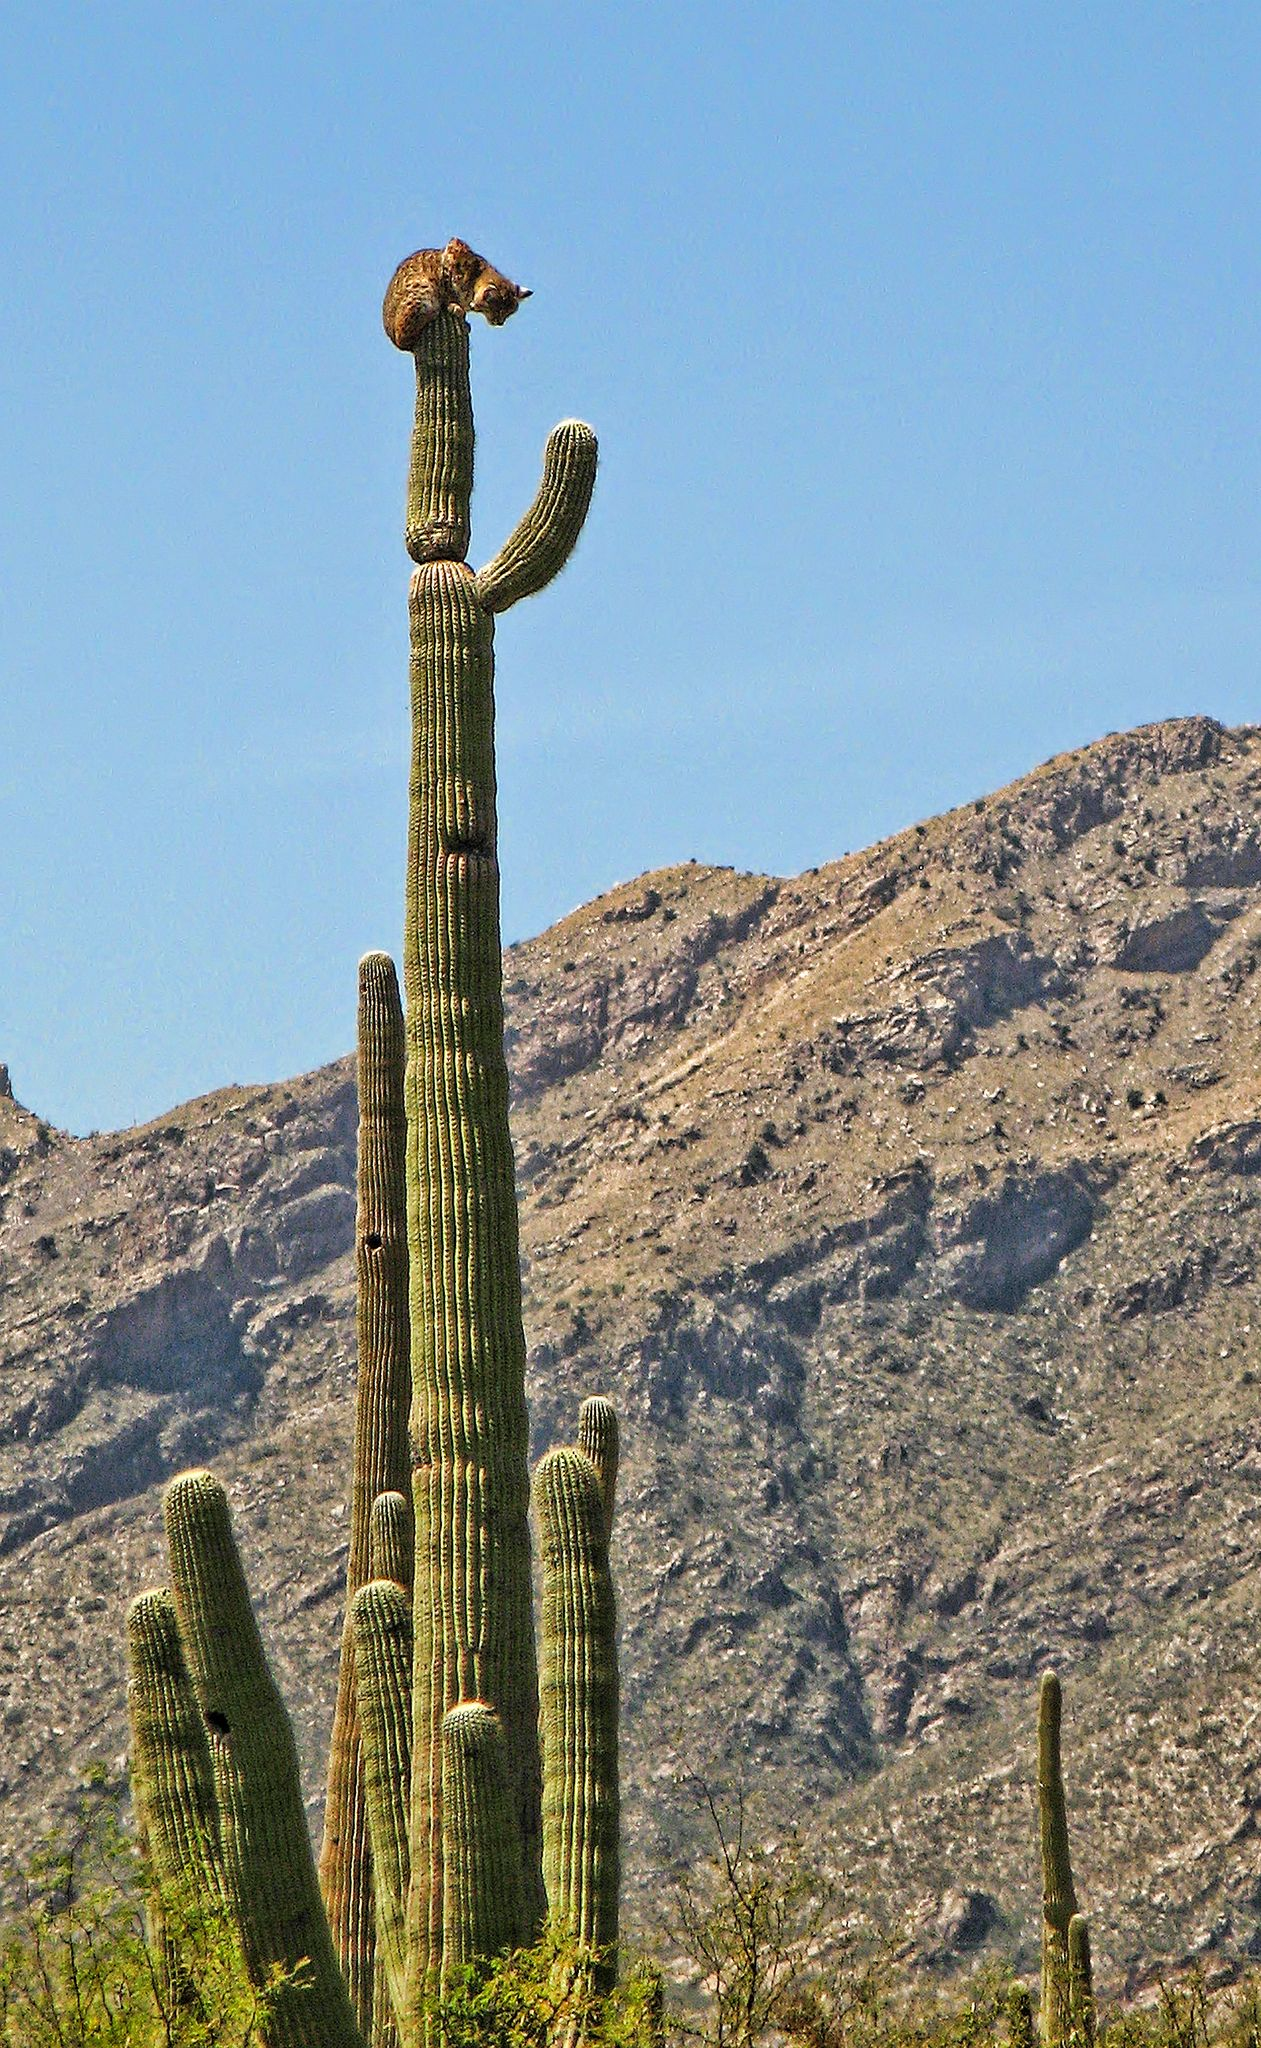 bobcat on saguaro cactus, Sabino Canyon Cactus, Animals